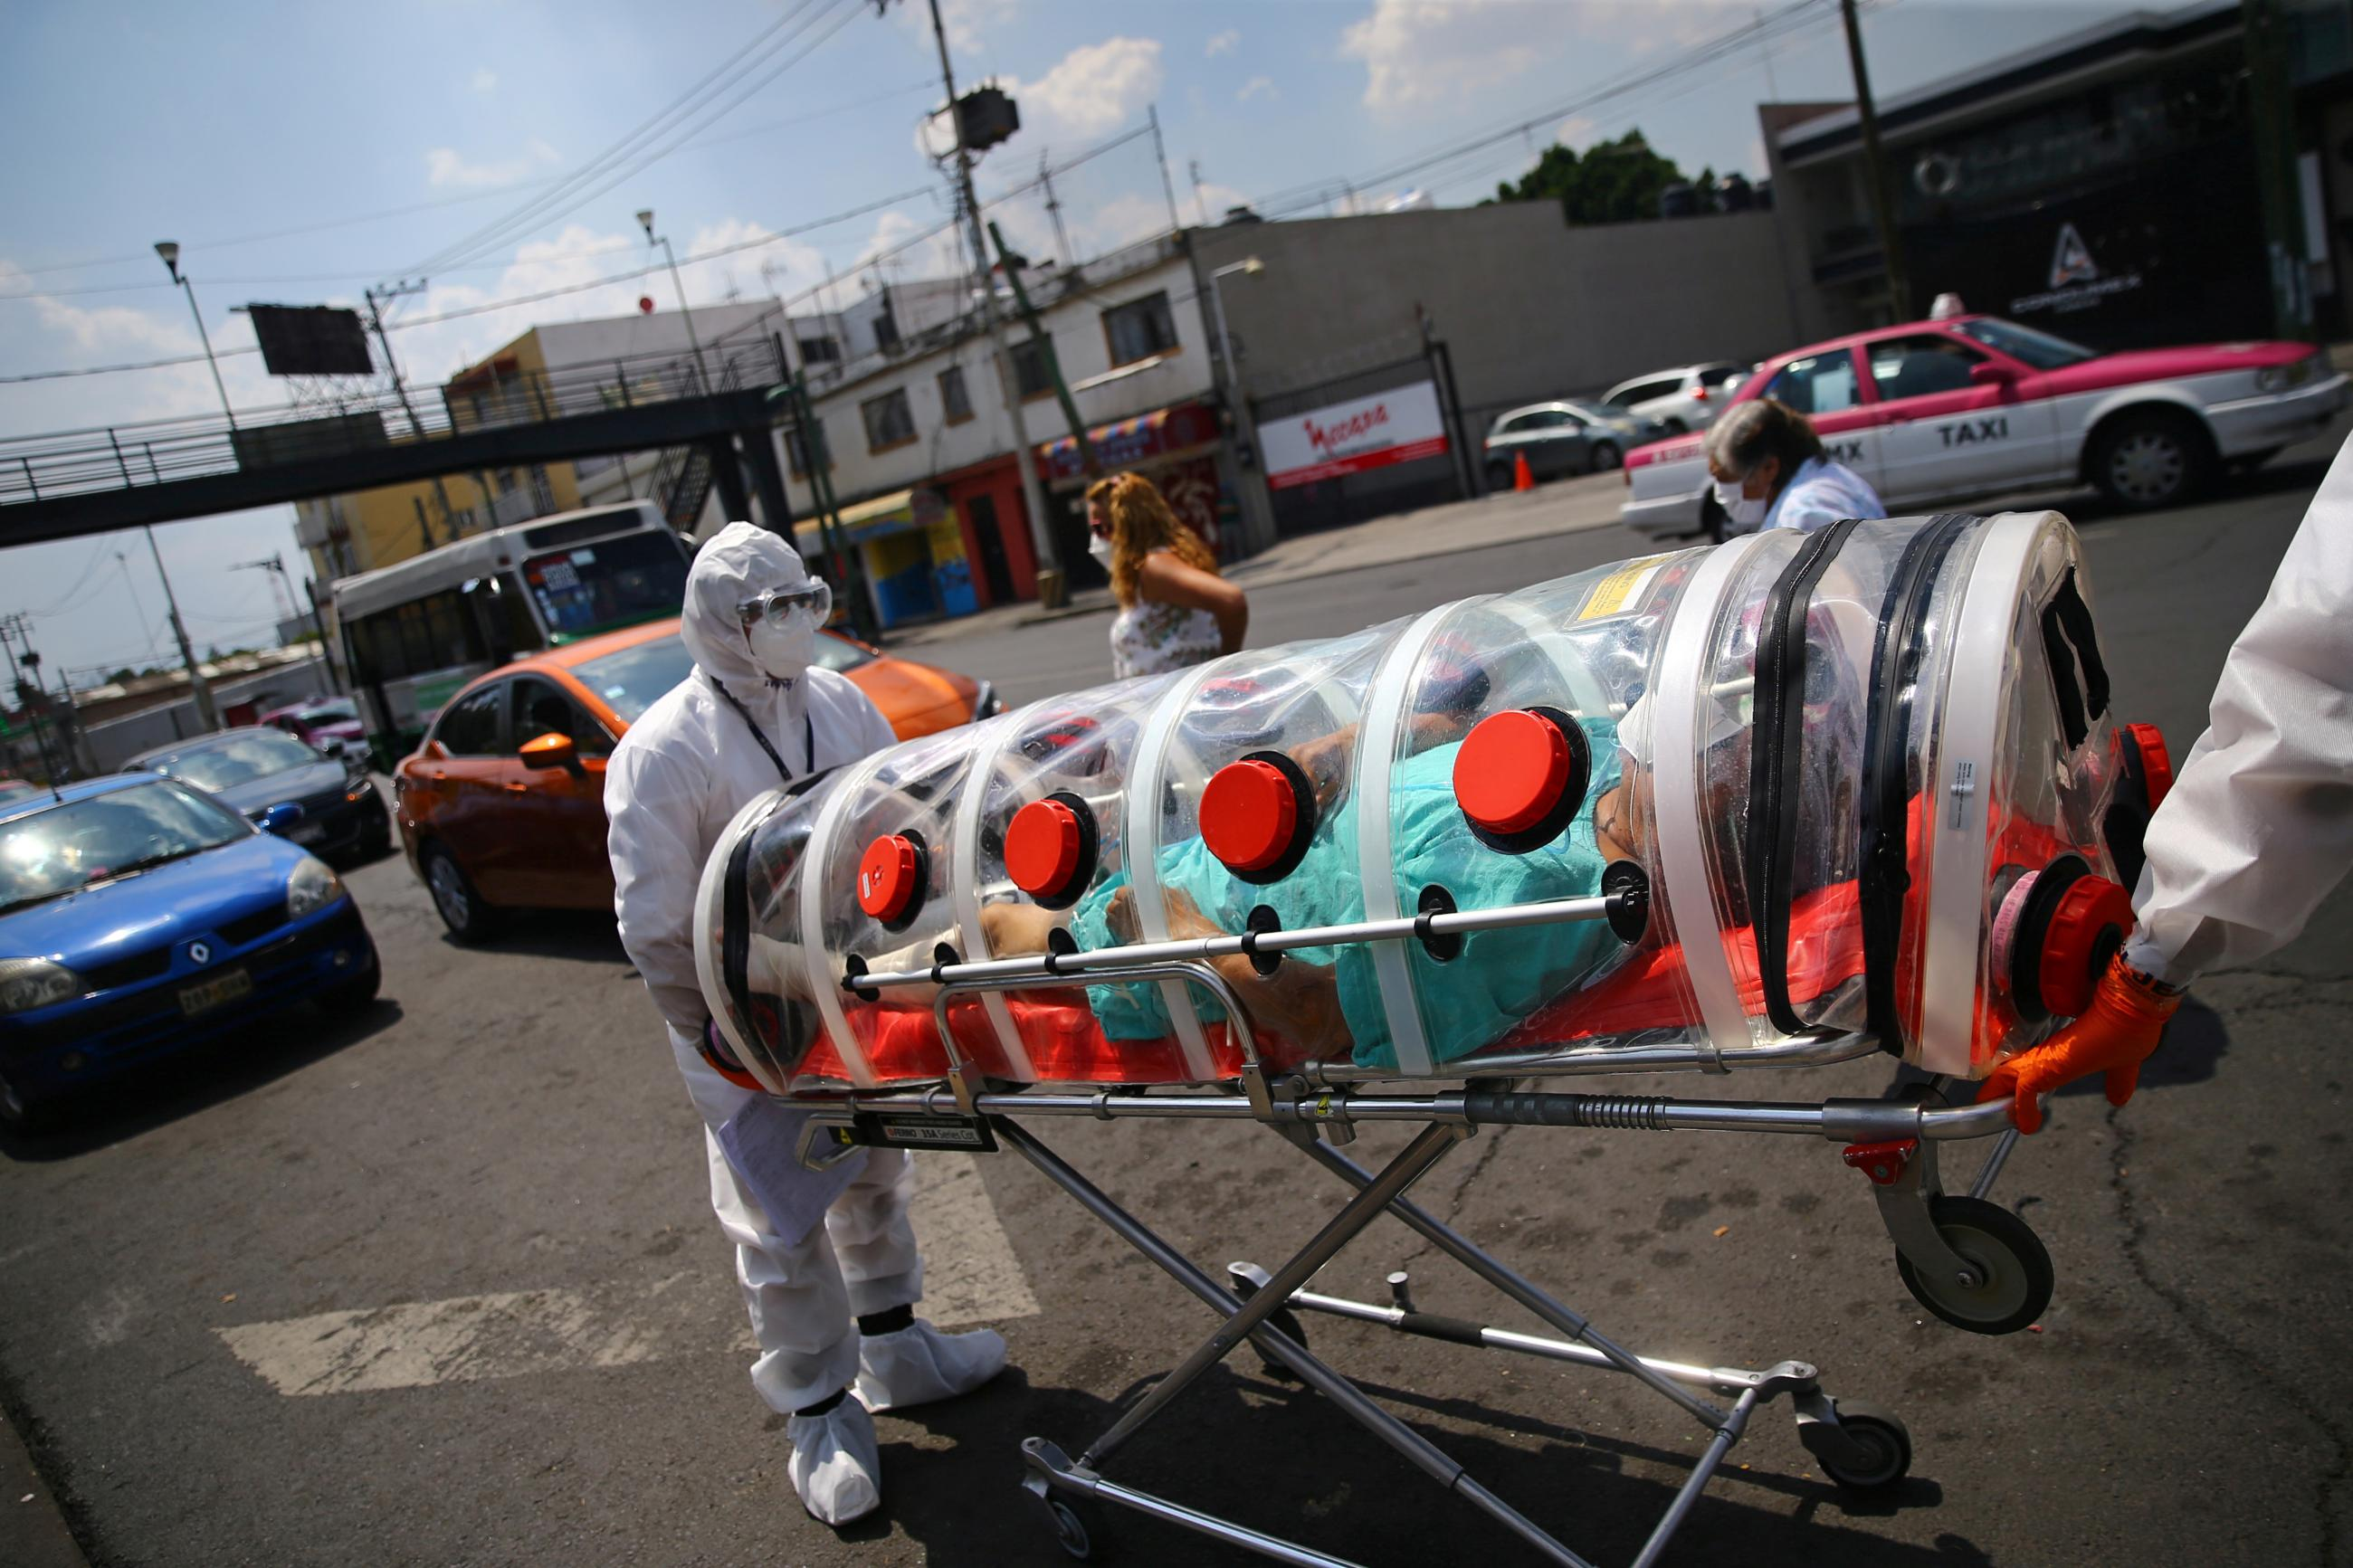 A patient suffering from COVID-19 and diabetes, is pictured inside a capsule as Red Cross paramedics transfer him from a hospital to another in Mexico City, Mexico, on June 8, 2020